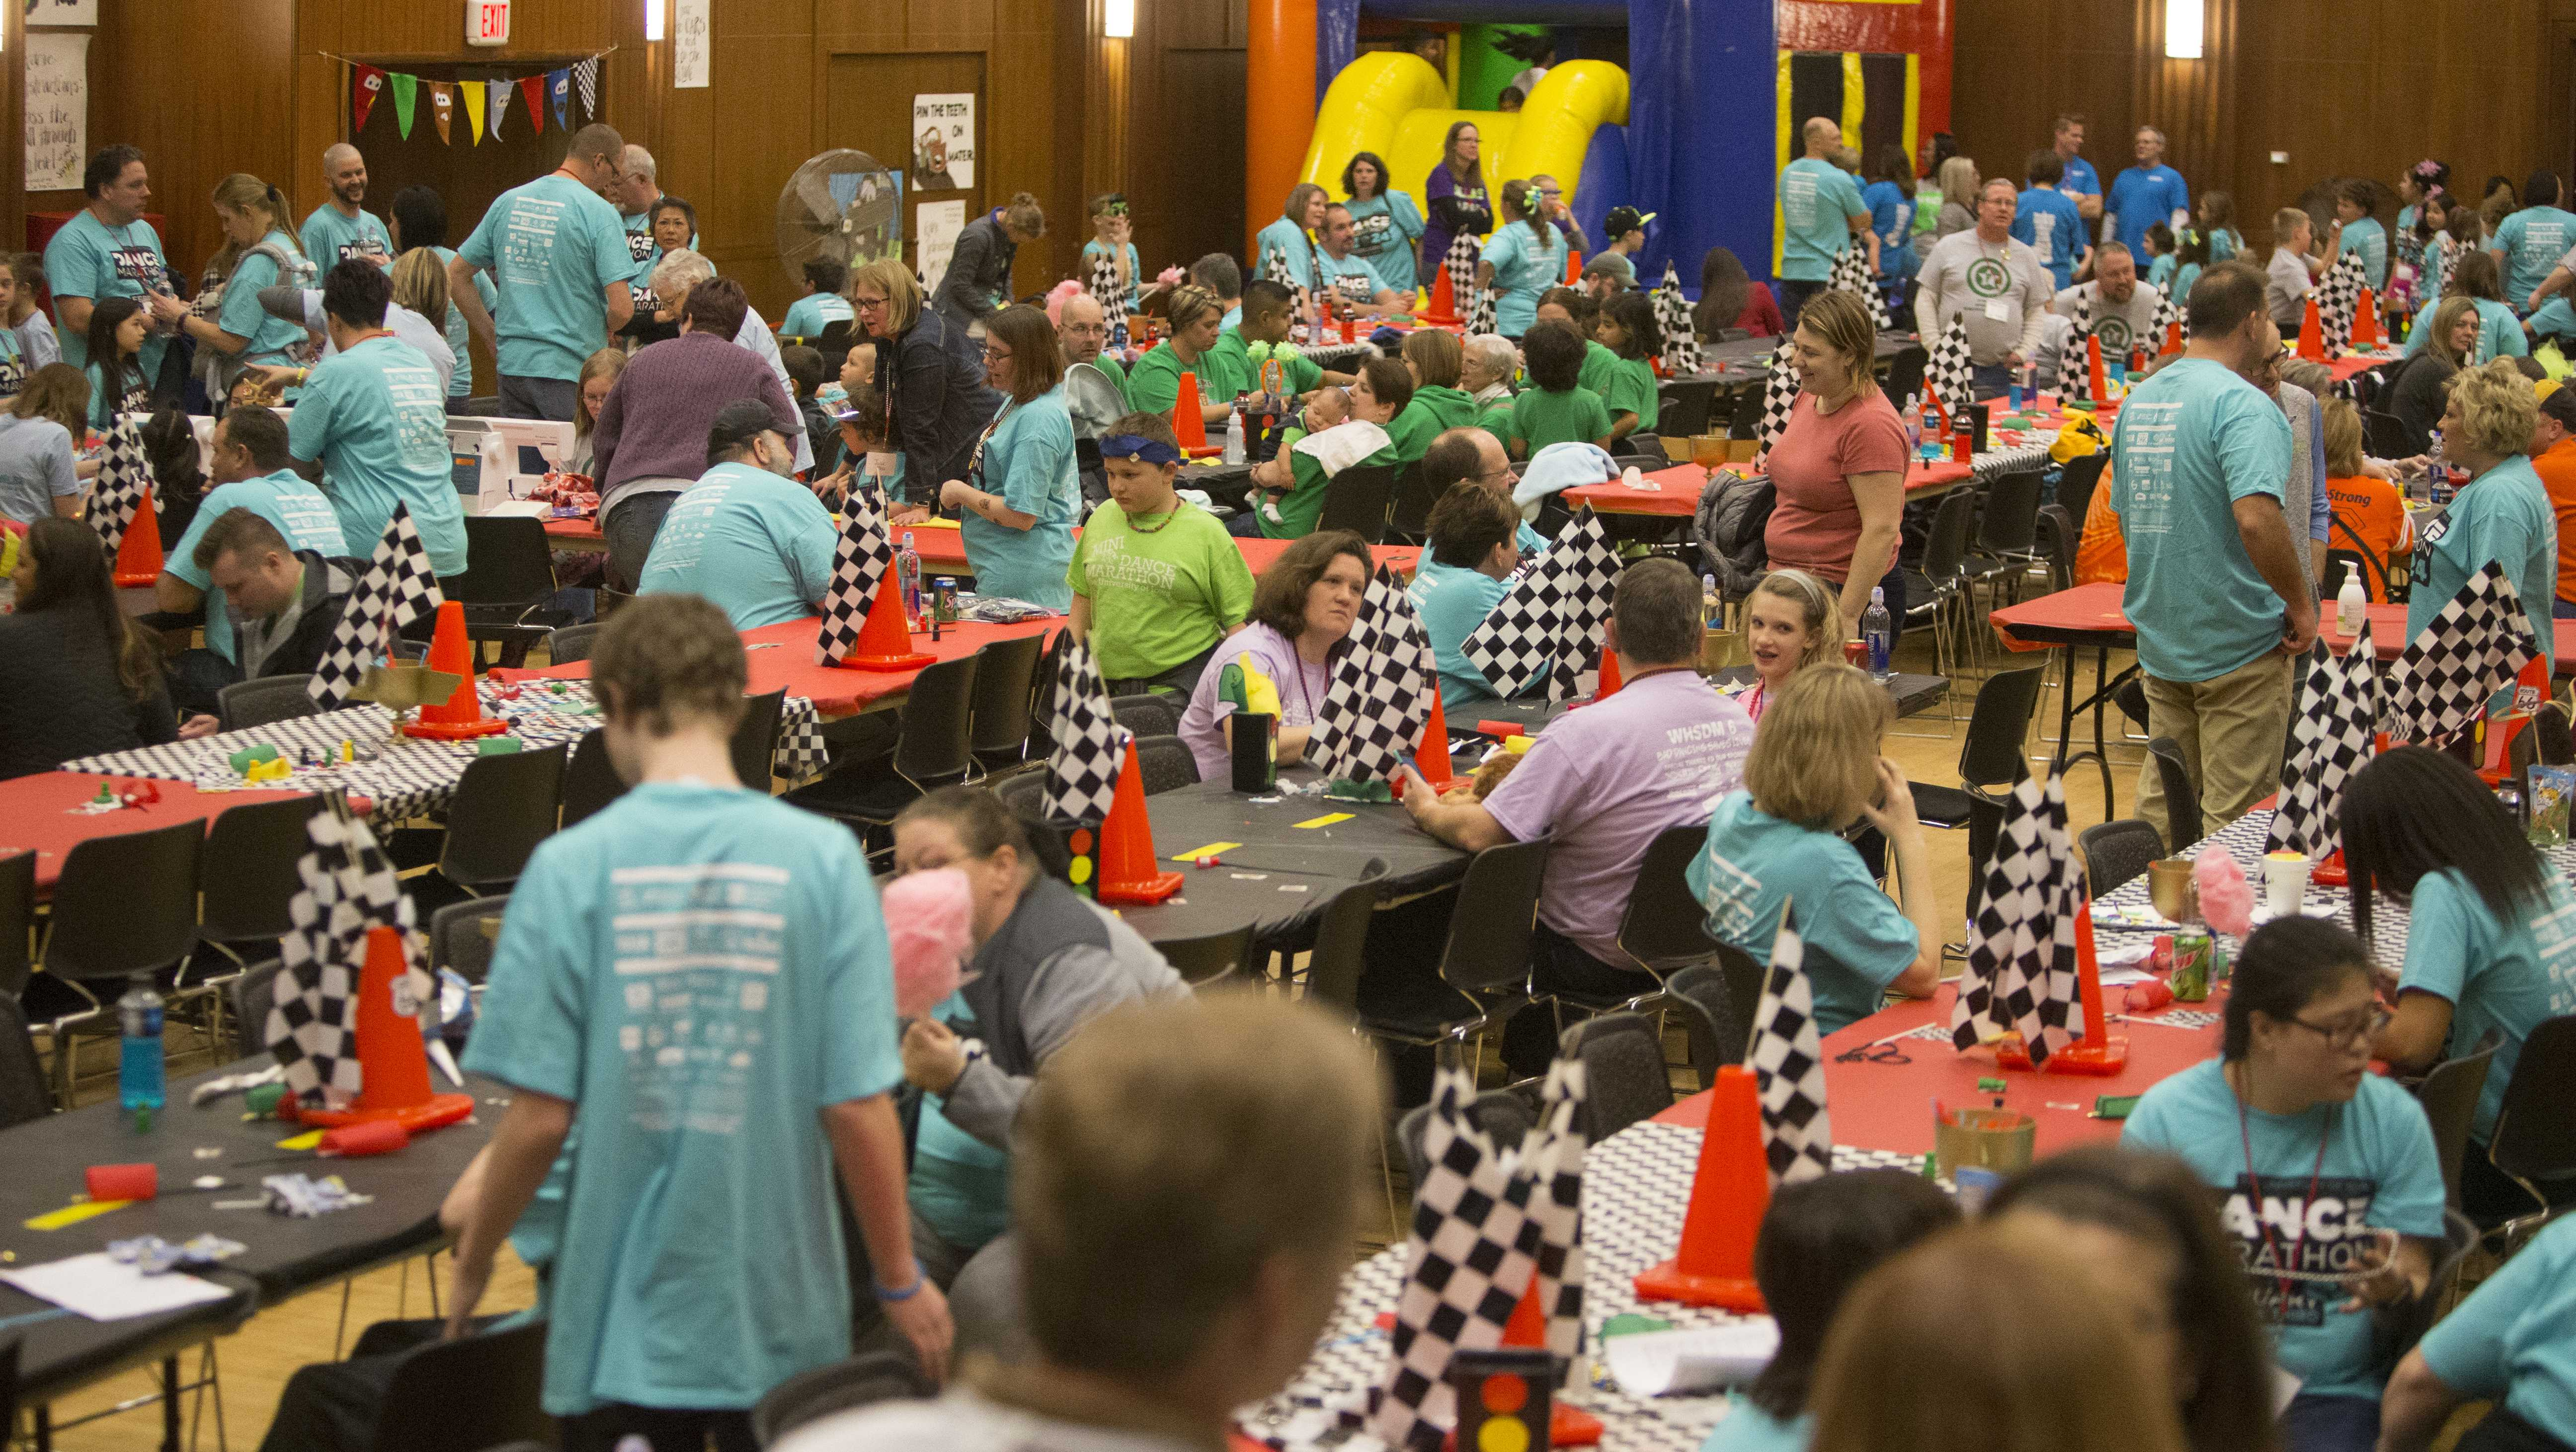 Children play at the Cars theme room in the second floor ballroom during dance Marathon 24 on Friday Feb. 2, 2018. Dance Marathon raises money for pediatric cancer research. (Katie Goodale/The Daily Iowan)